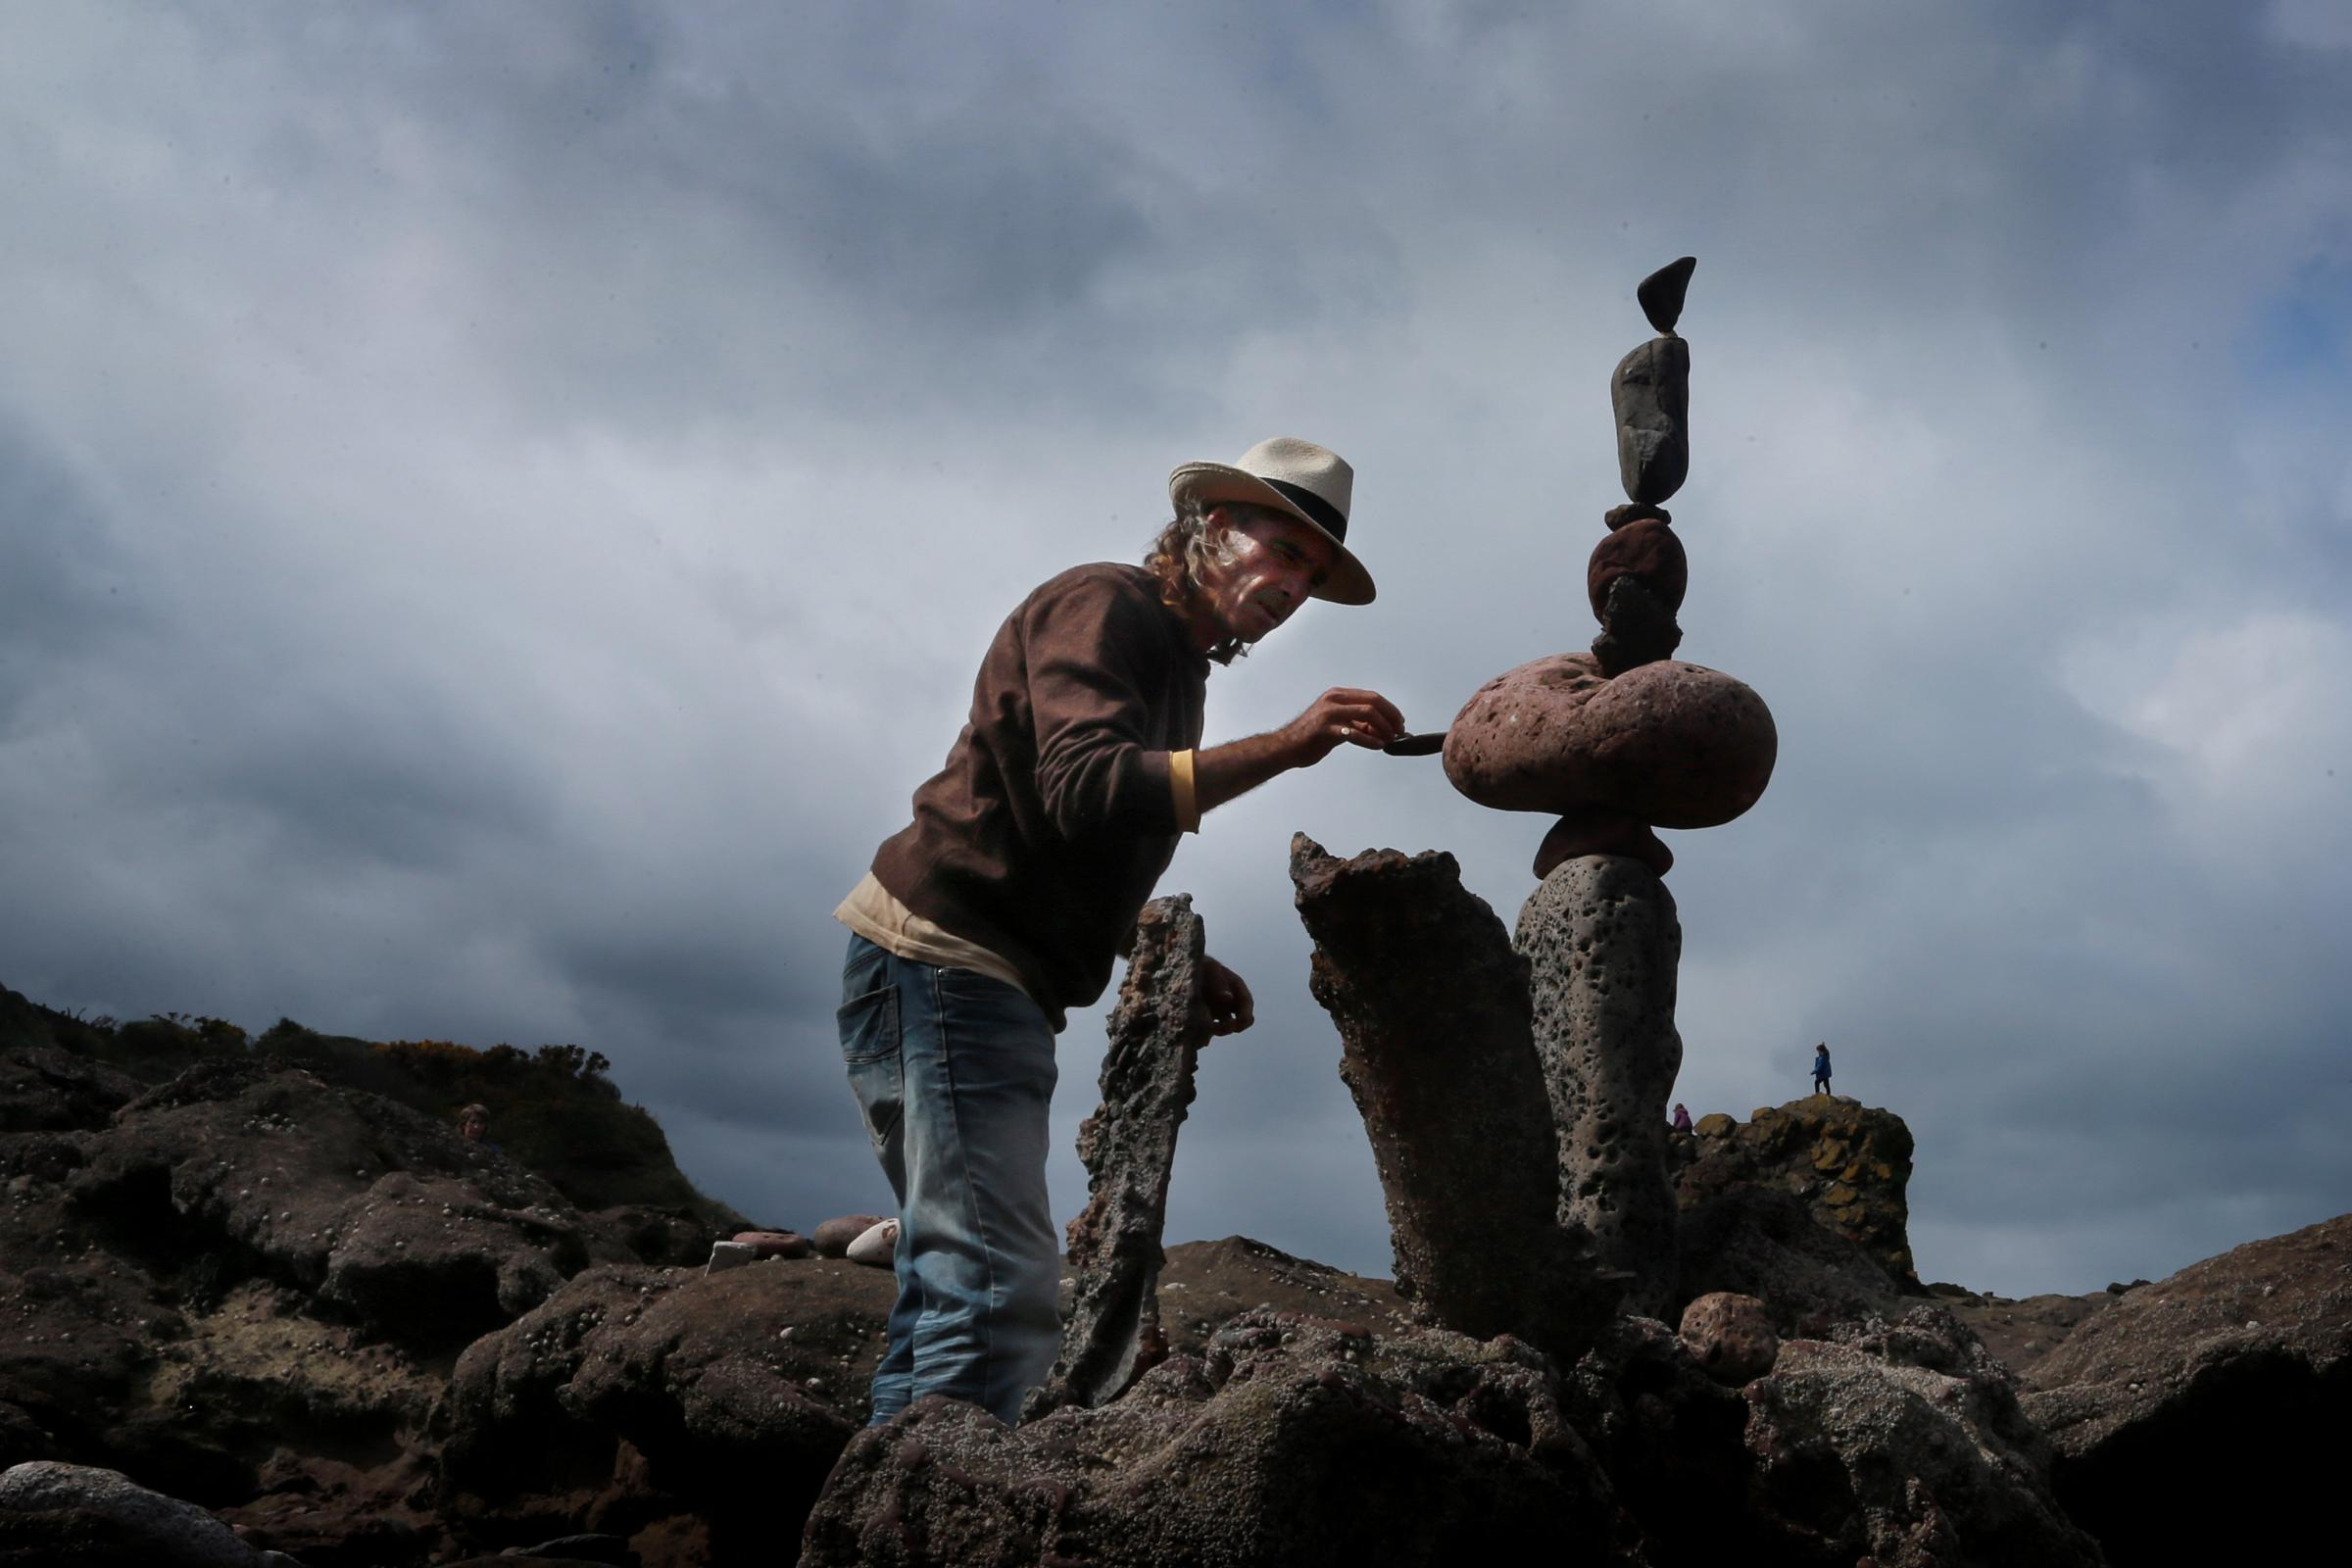 It's a balancing act as Marco Montesini, from Spain, arranges his stack. Pictures: Stewart Attwood